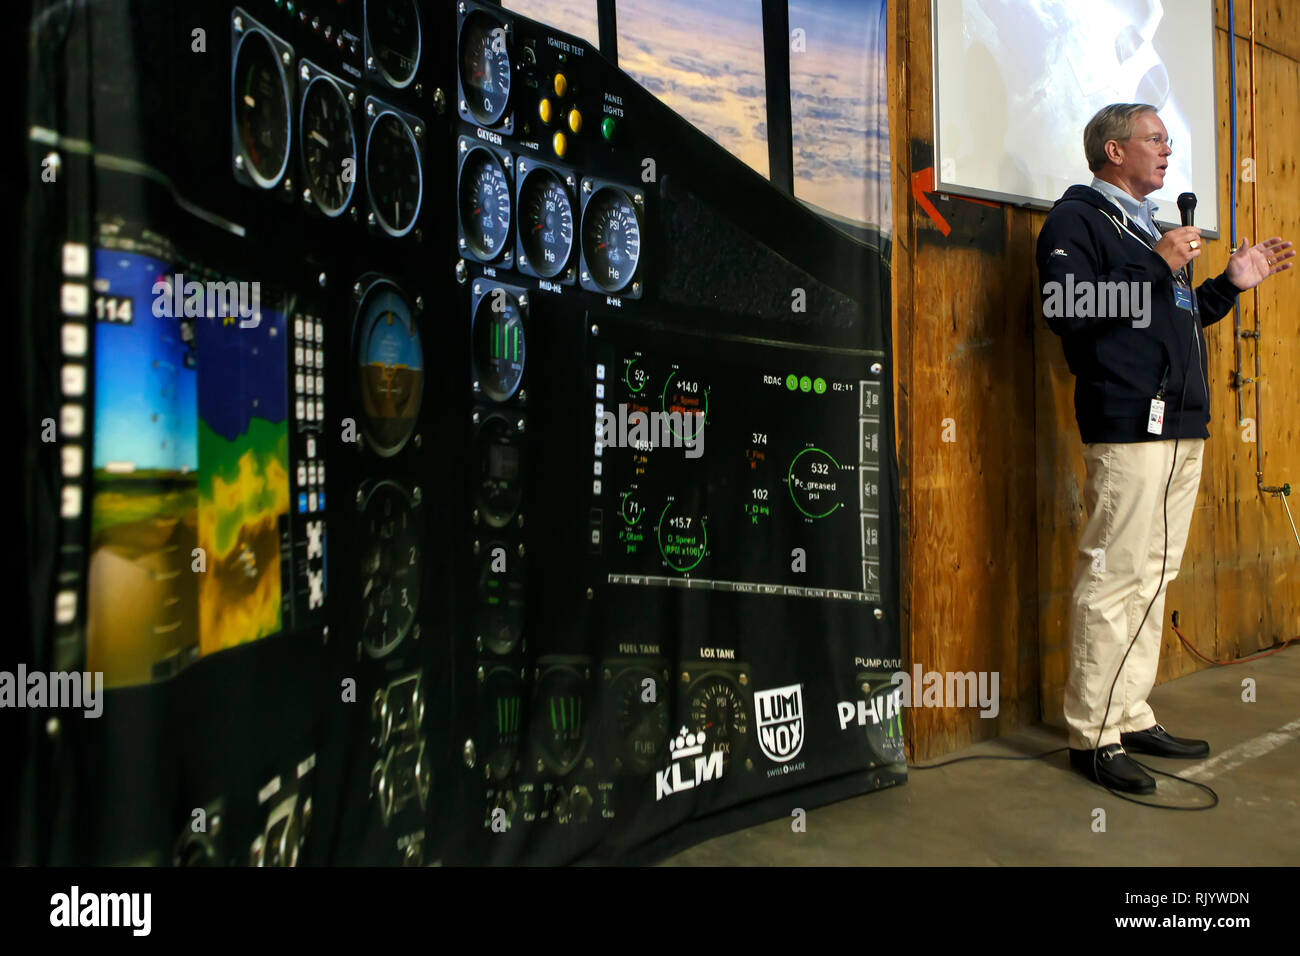 XCOR ceo John Gibson is welcoming the visitors at the Mojave spaceport. - Stock Image